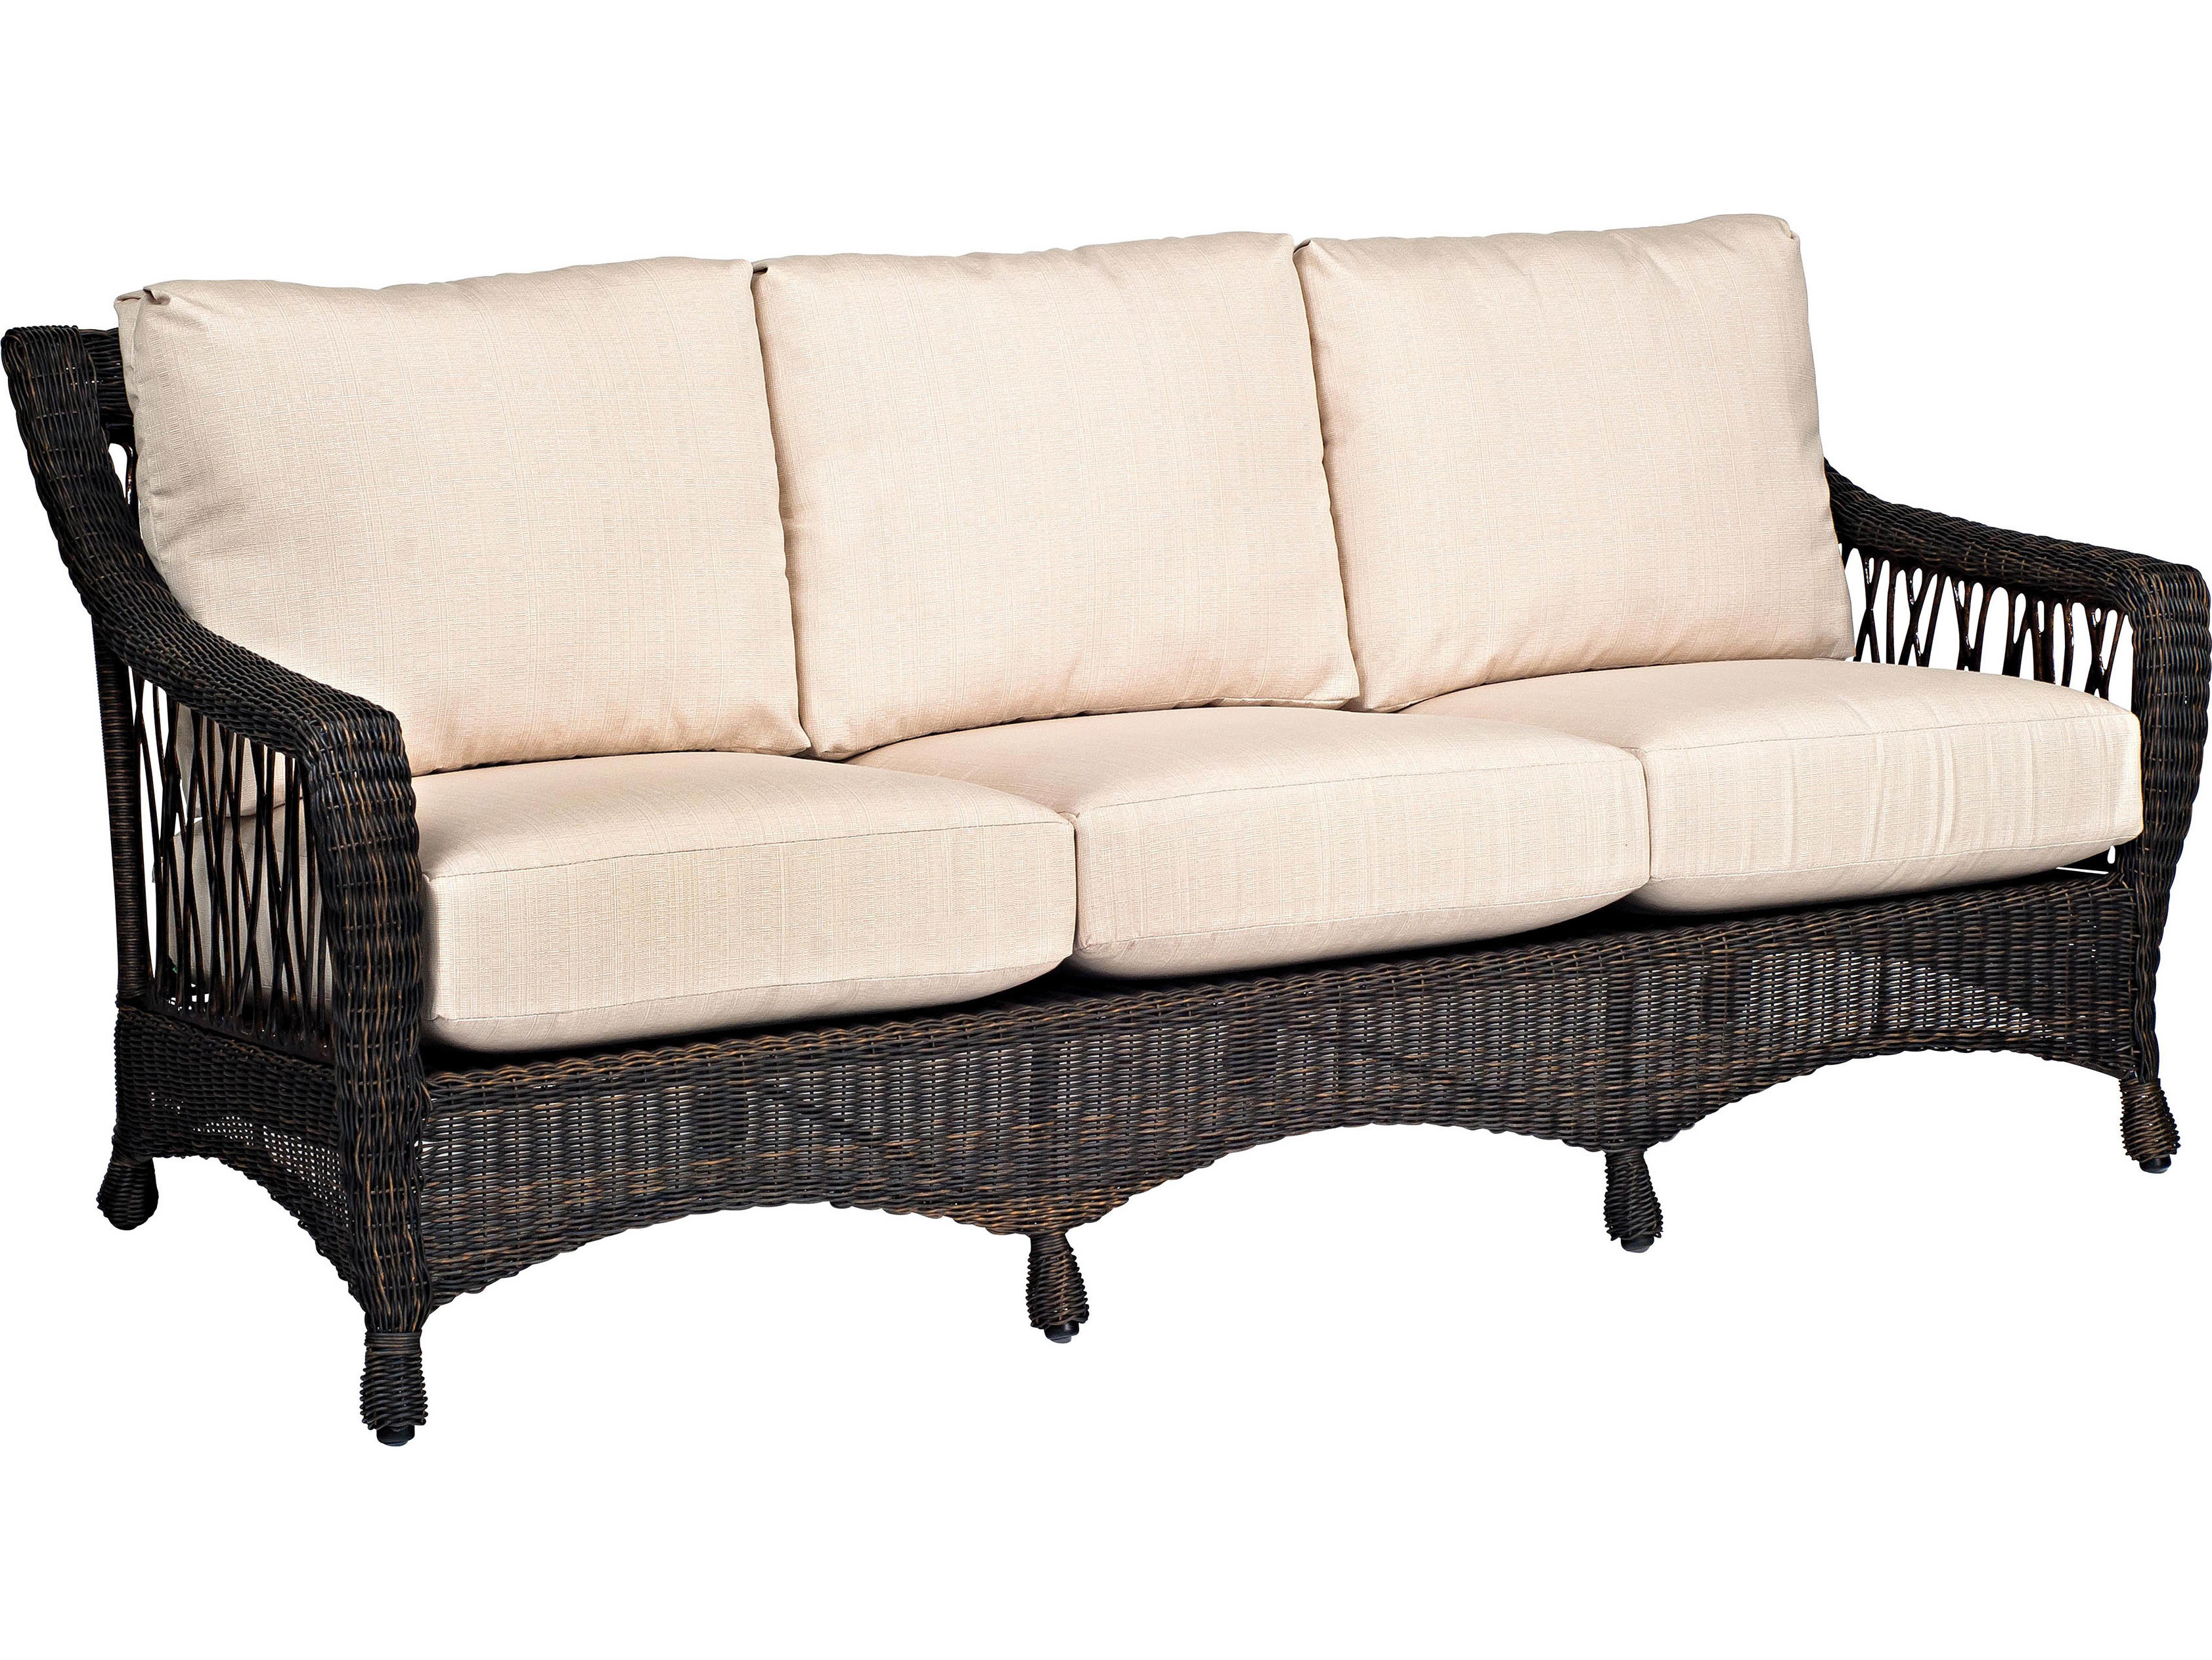 woodard serengeti sofa replacement cushions 910020ch. Black Bedroom Furniture Sets. Home Design Ideas